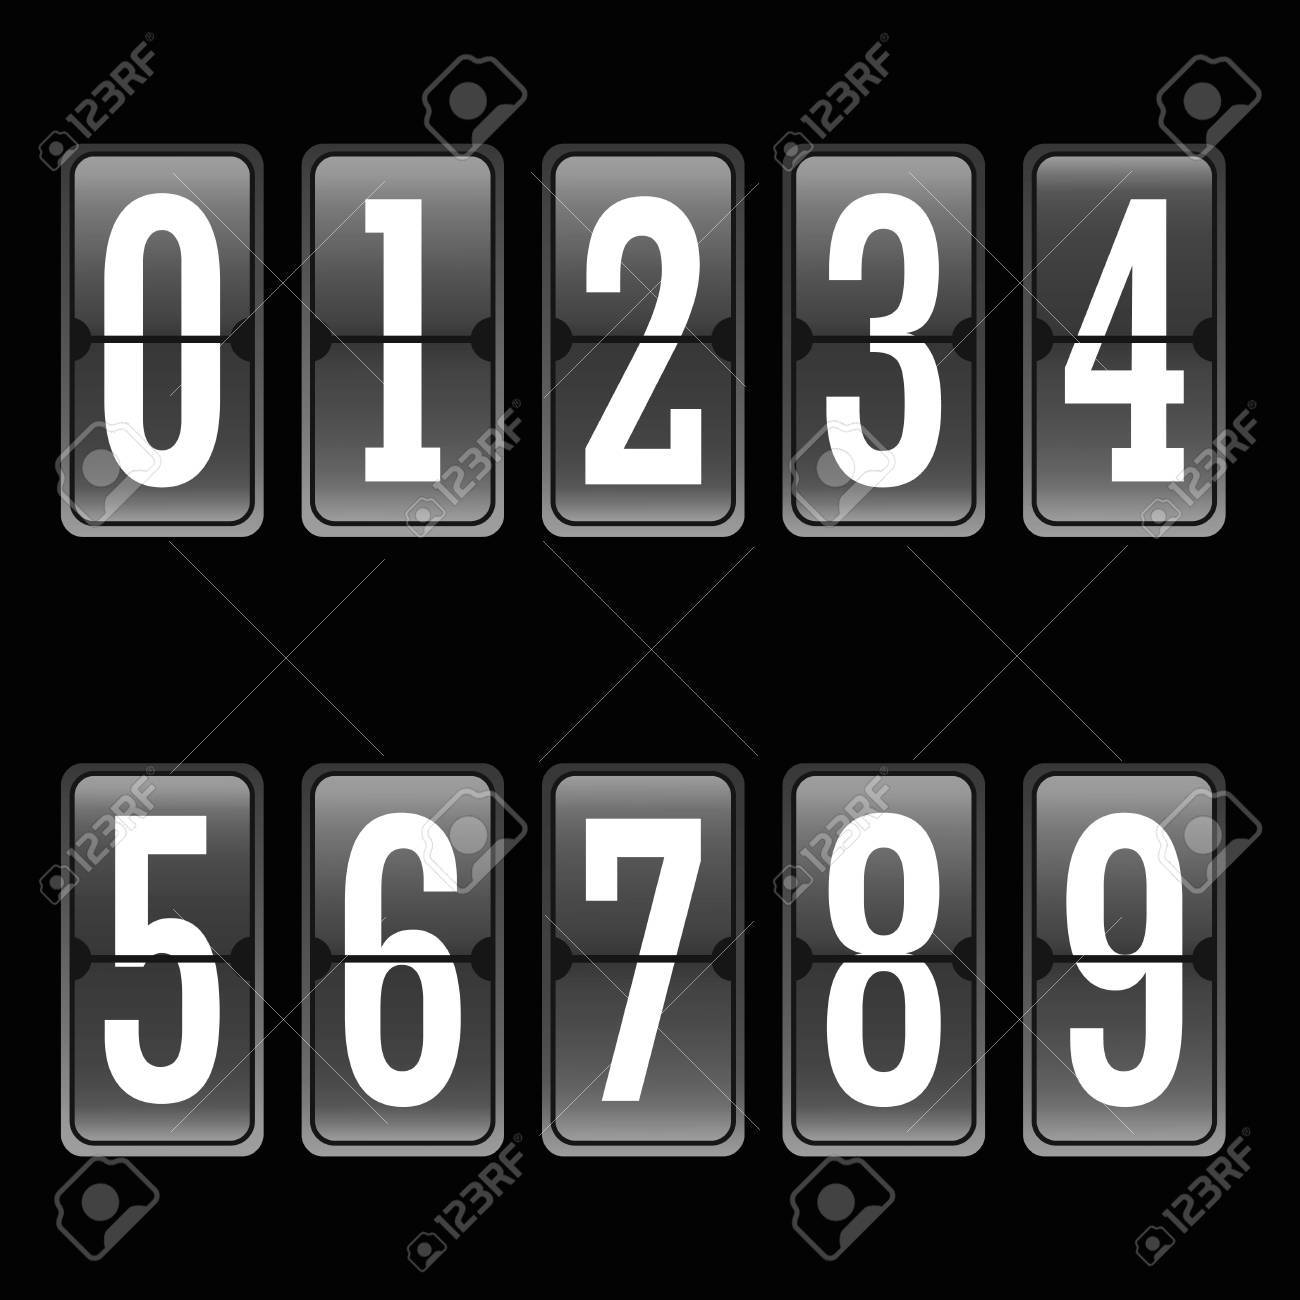 Football soccer scoreboard numbers set from to 9 - 60719234